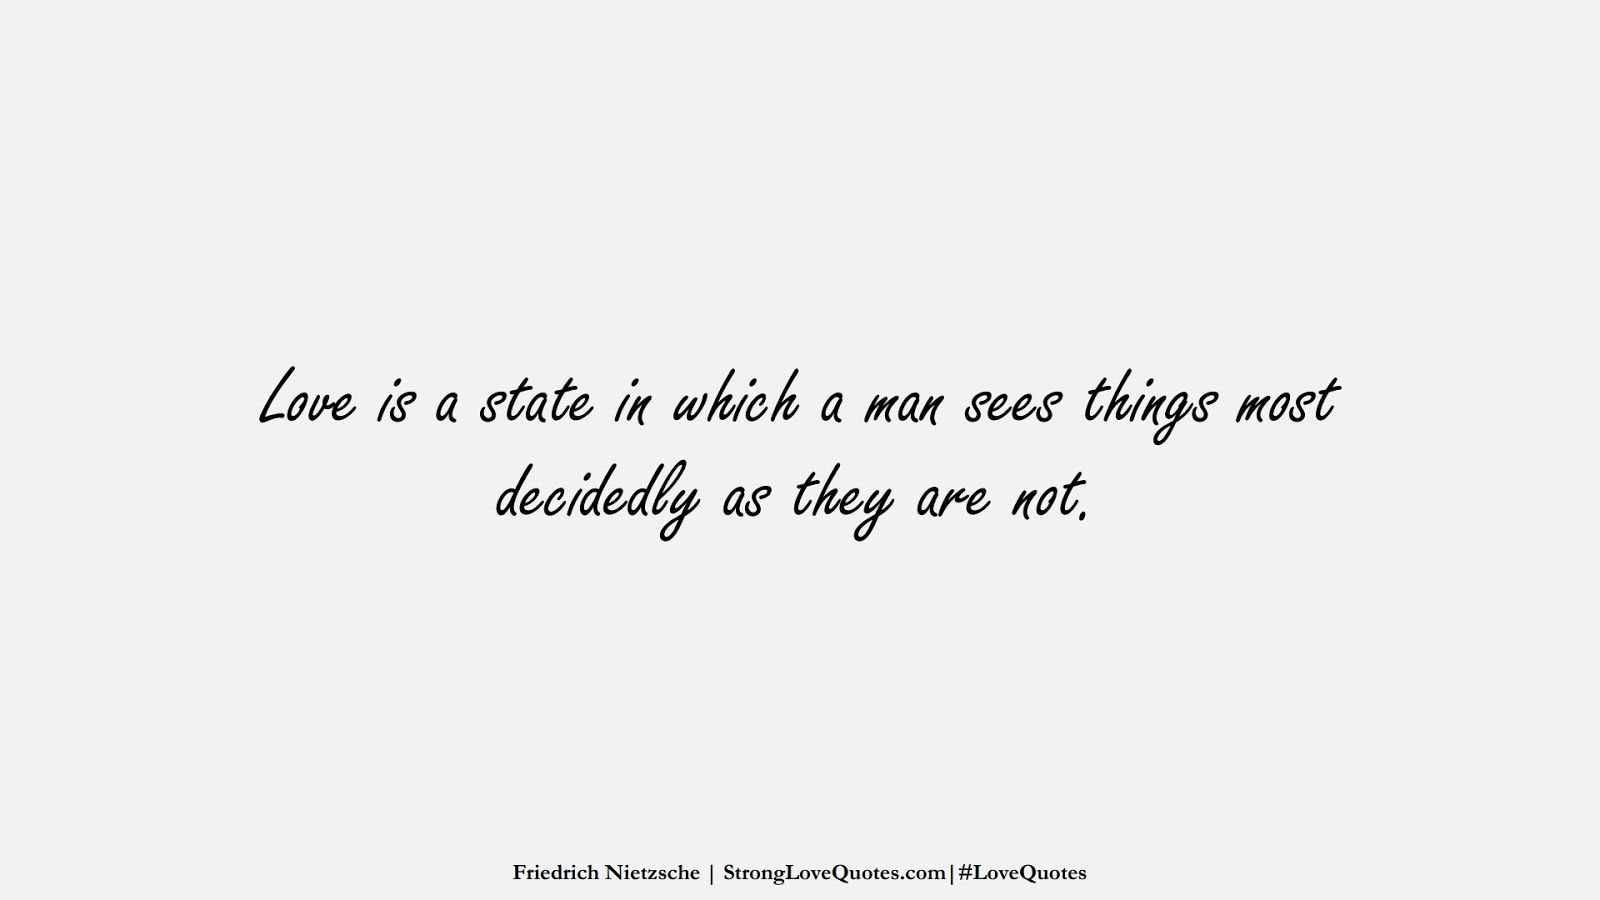 Love is a state in which a man sees things most decidedly as they are not. (Friedrich Nietzsche);  #LoveQuotes